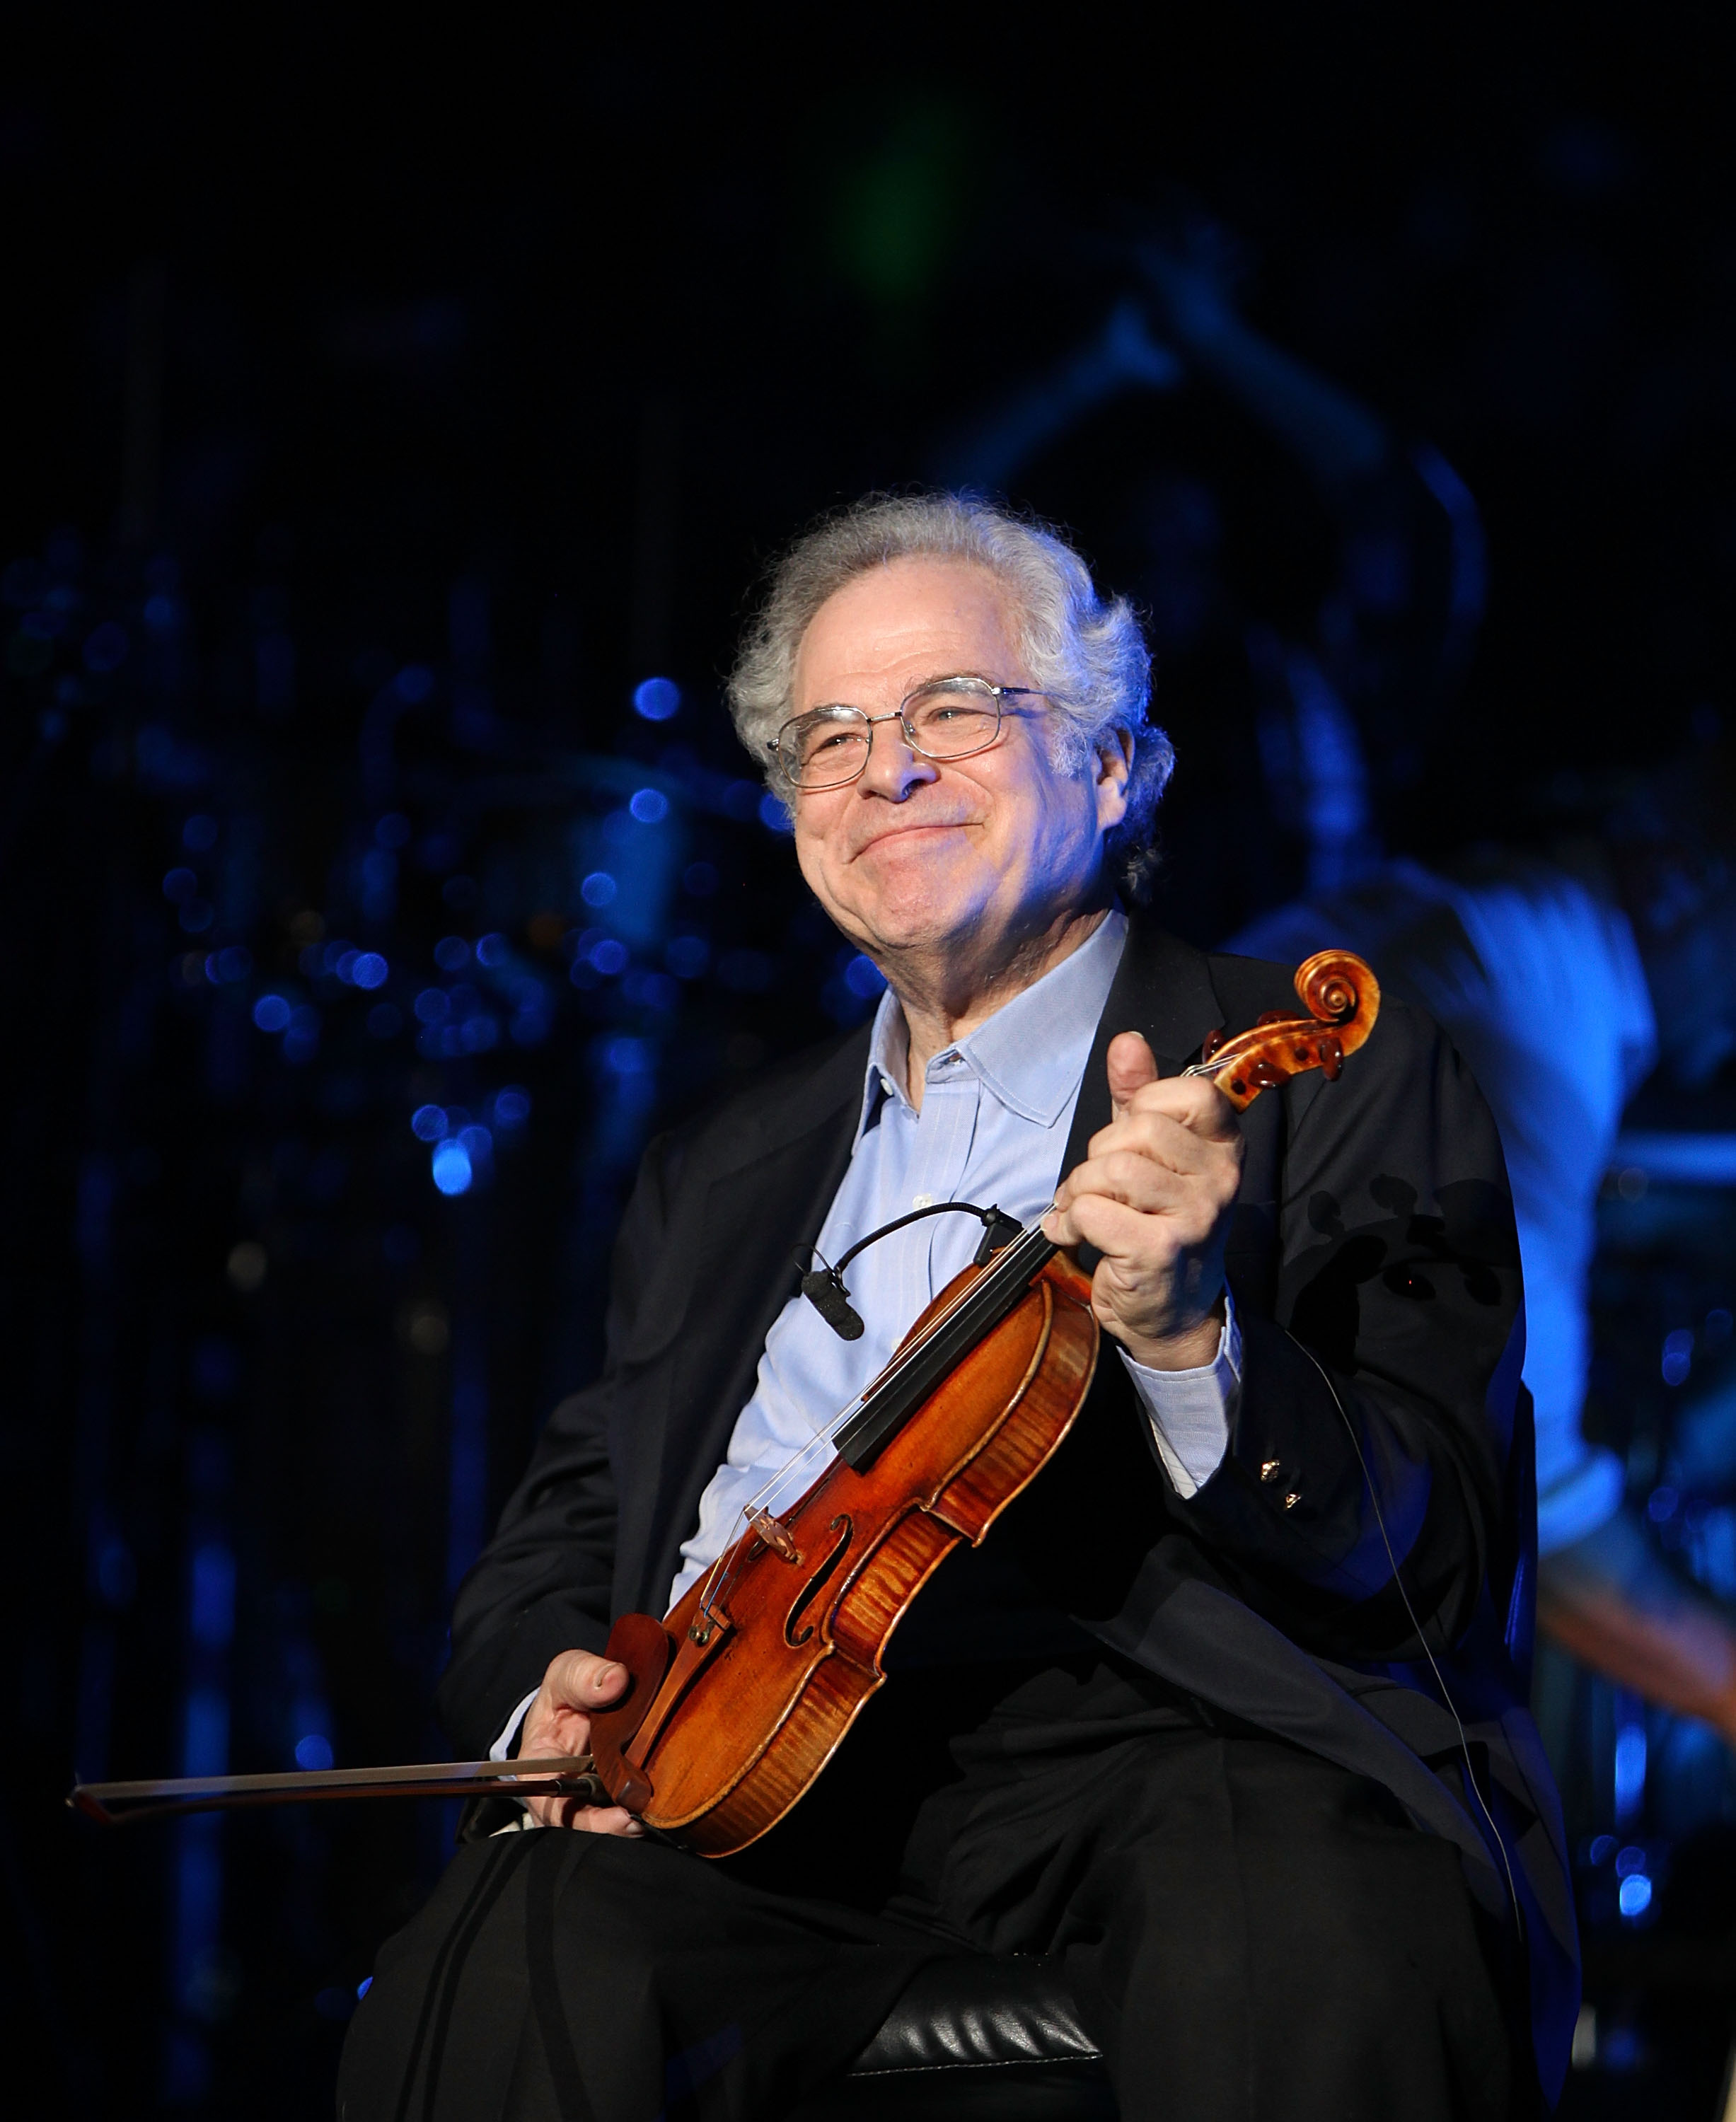 Violinist virtuoso Itzhak Perlman performs at  Billy Joel's sold out concert at Madison Square Garden on March 9, 2015 in New York City.